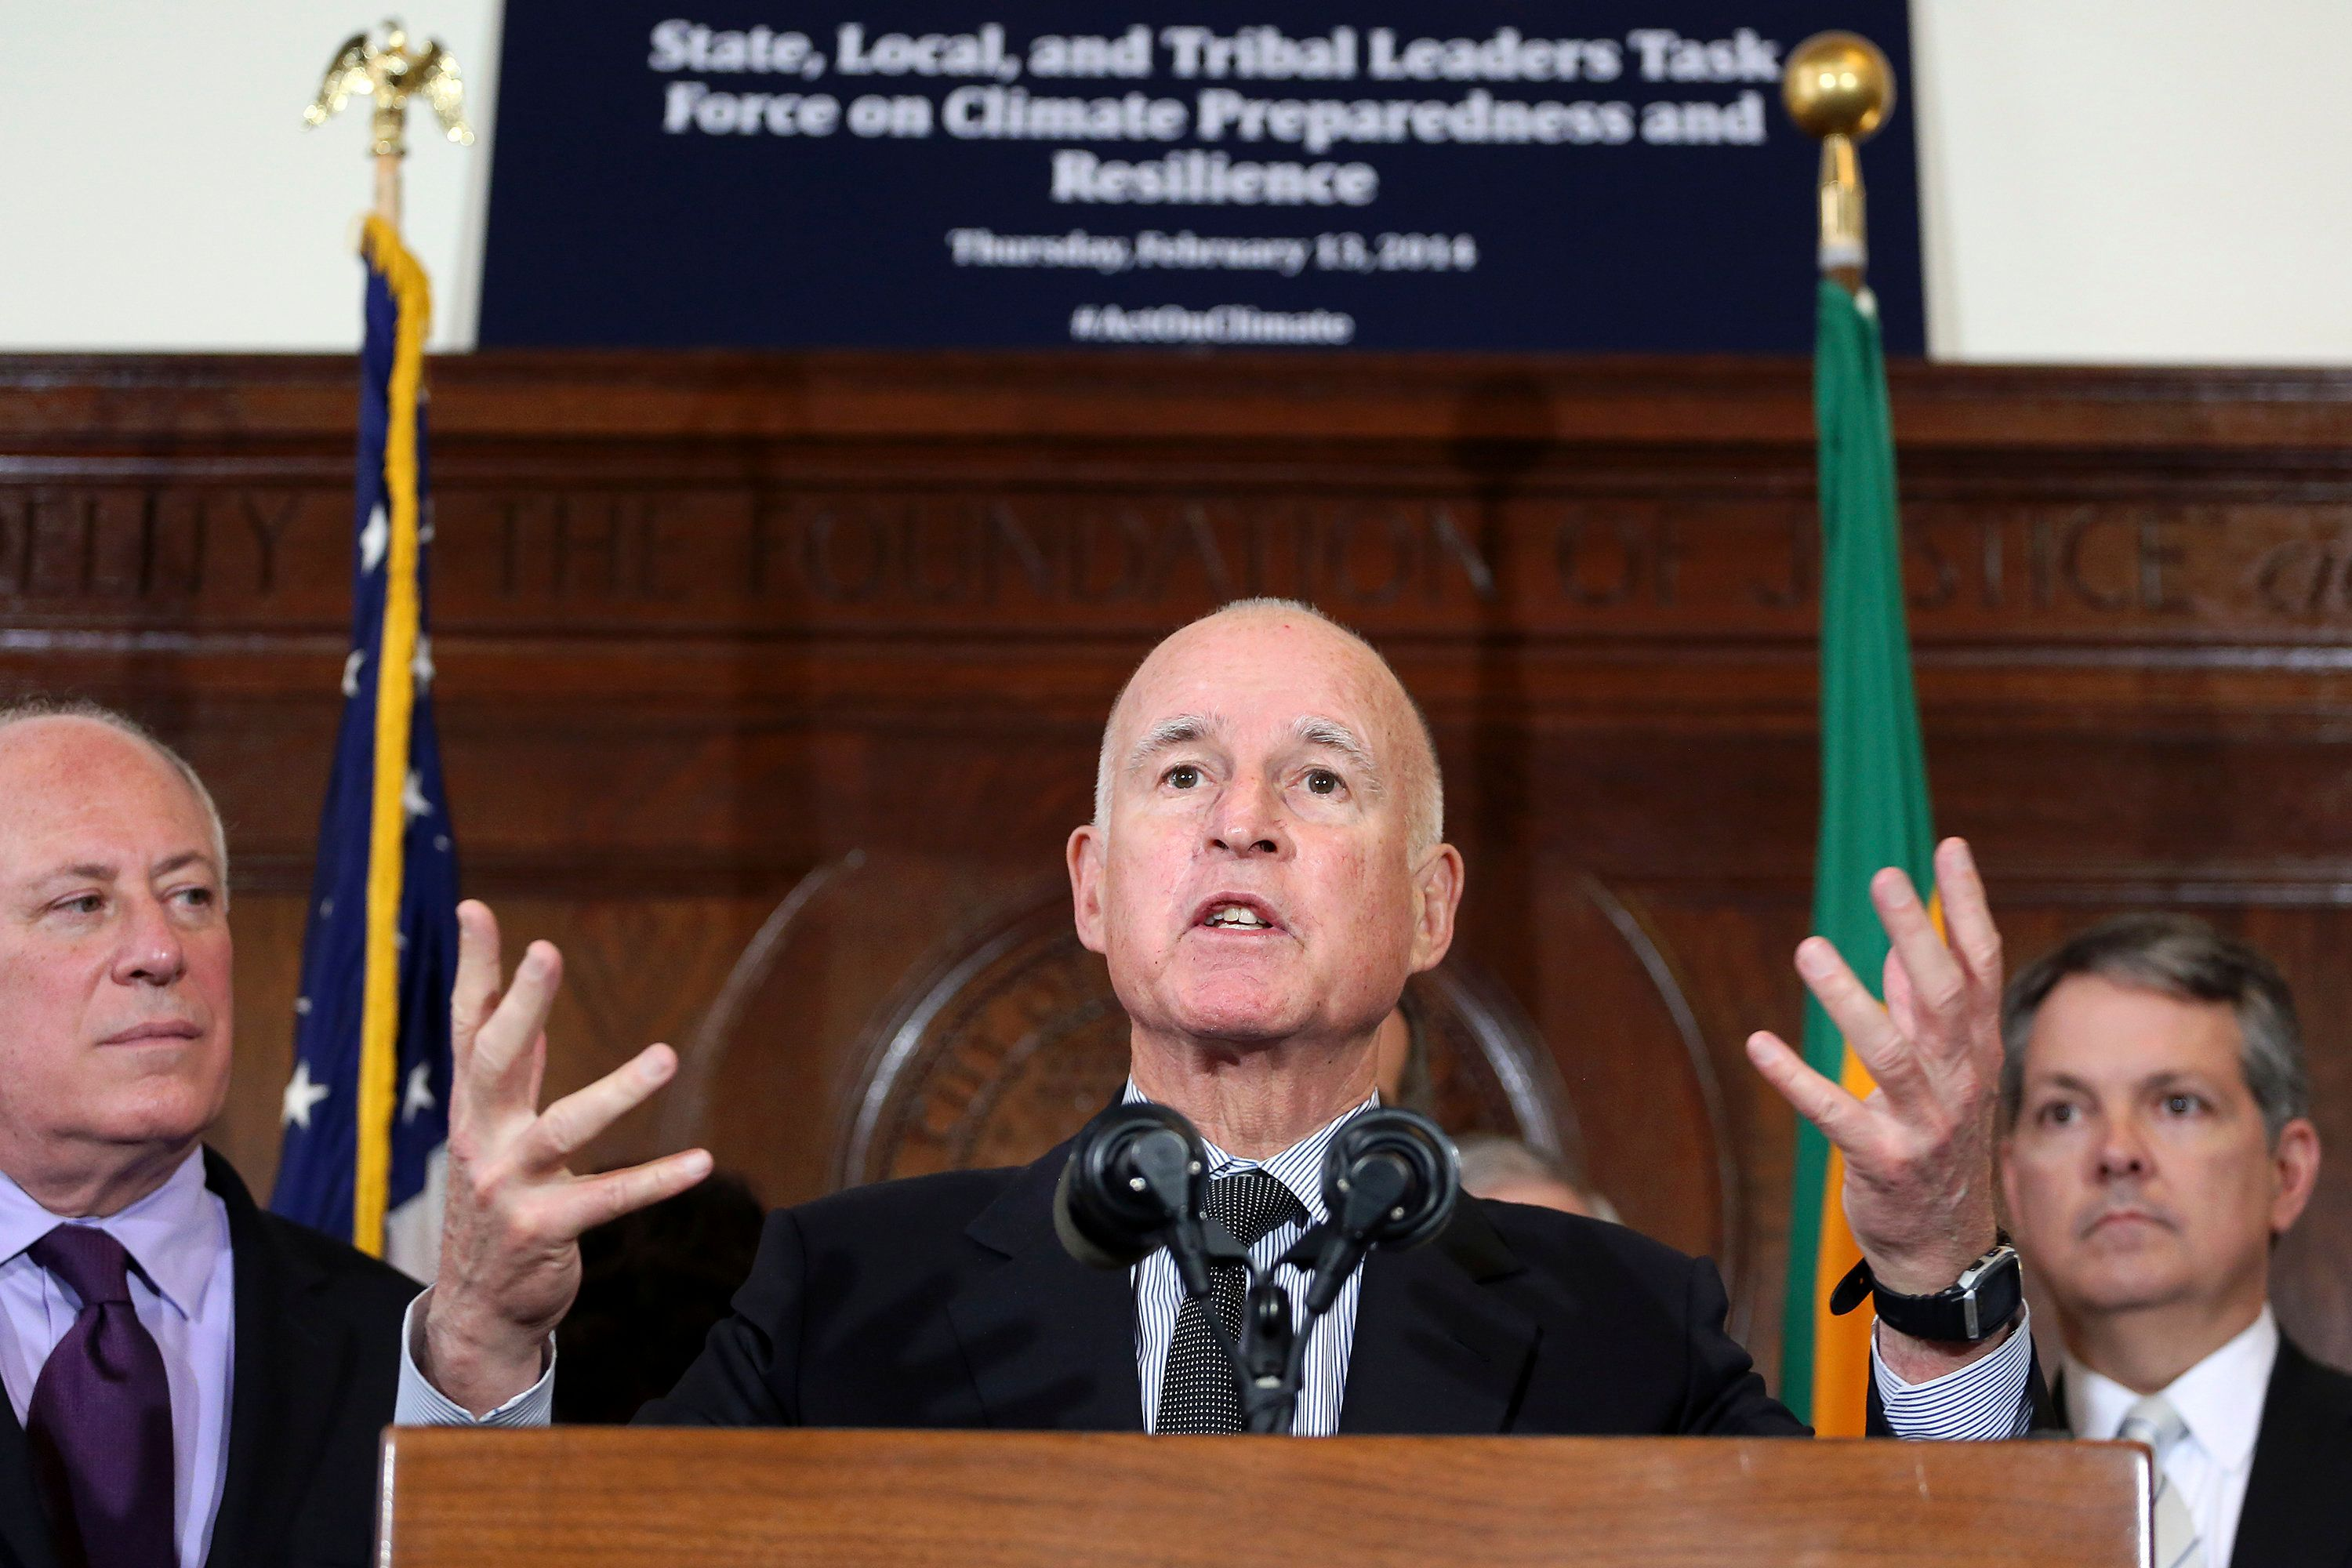 California Gov. Jerry Brown (C) speaks during a media briefing by members of President Barack Obama's Climate Task Force committee in Los Angeles, California February 13, 2014. REUTERS/Jonathan Alcorn (UNITED STATES - Tags: POLITICS ENVIRONMENT)